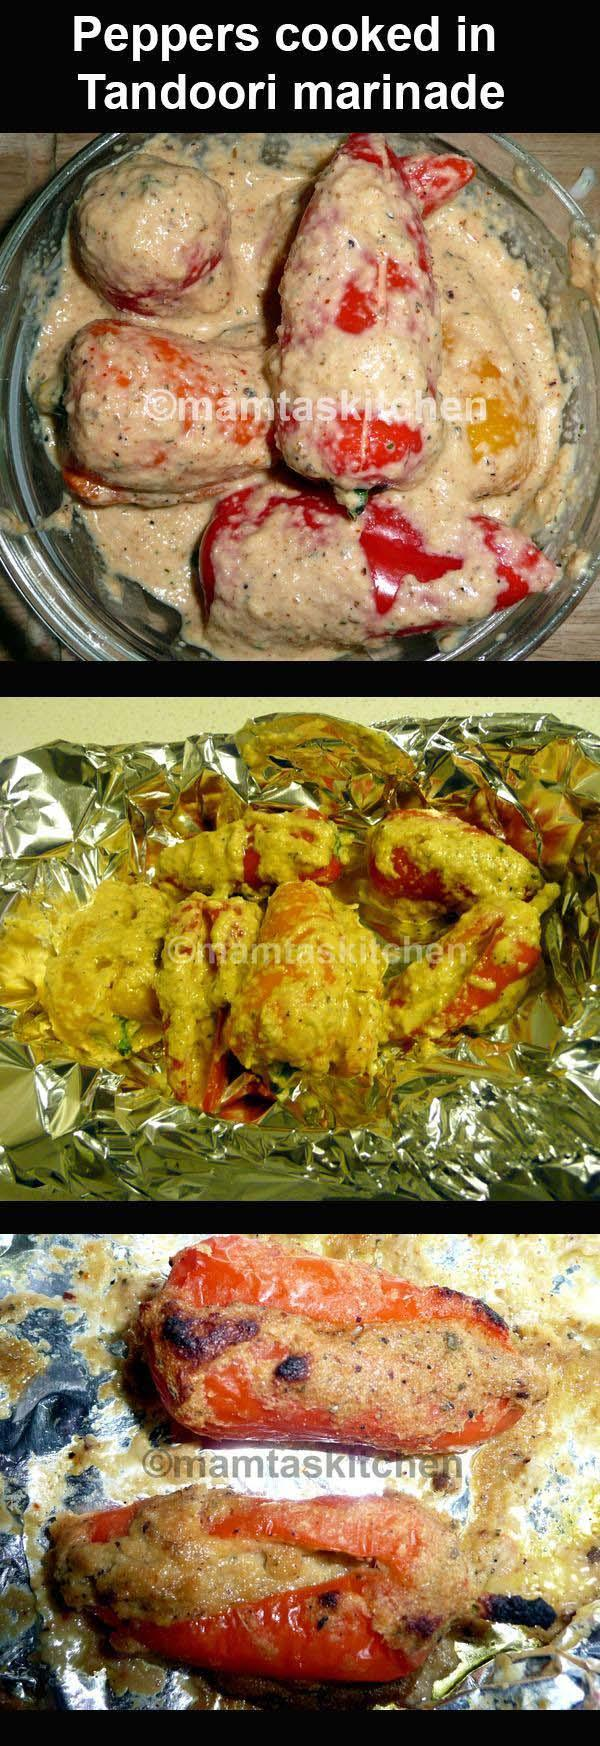 Tandoori Peppers or Other Vegetables